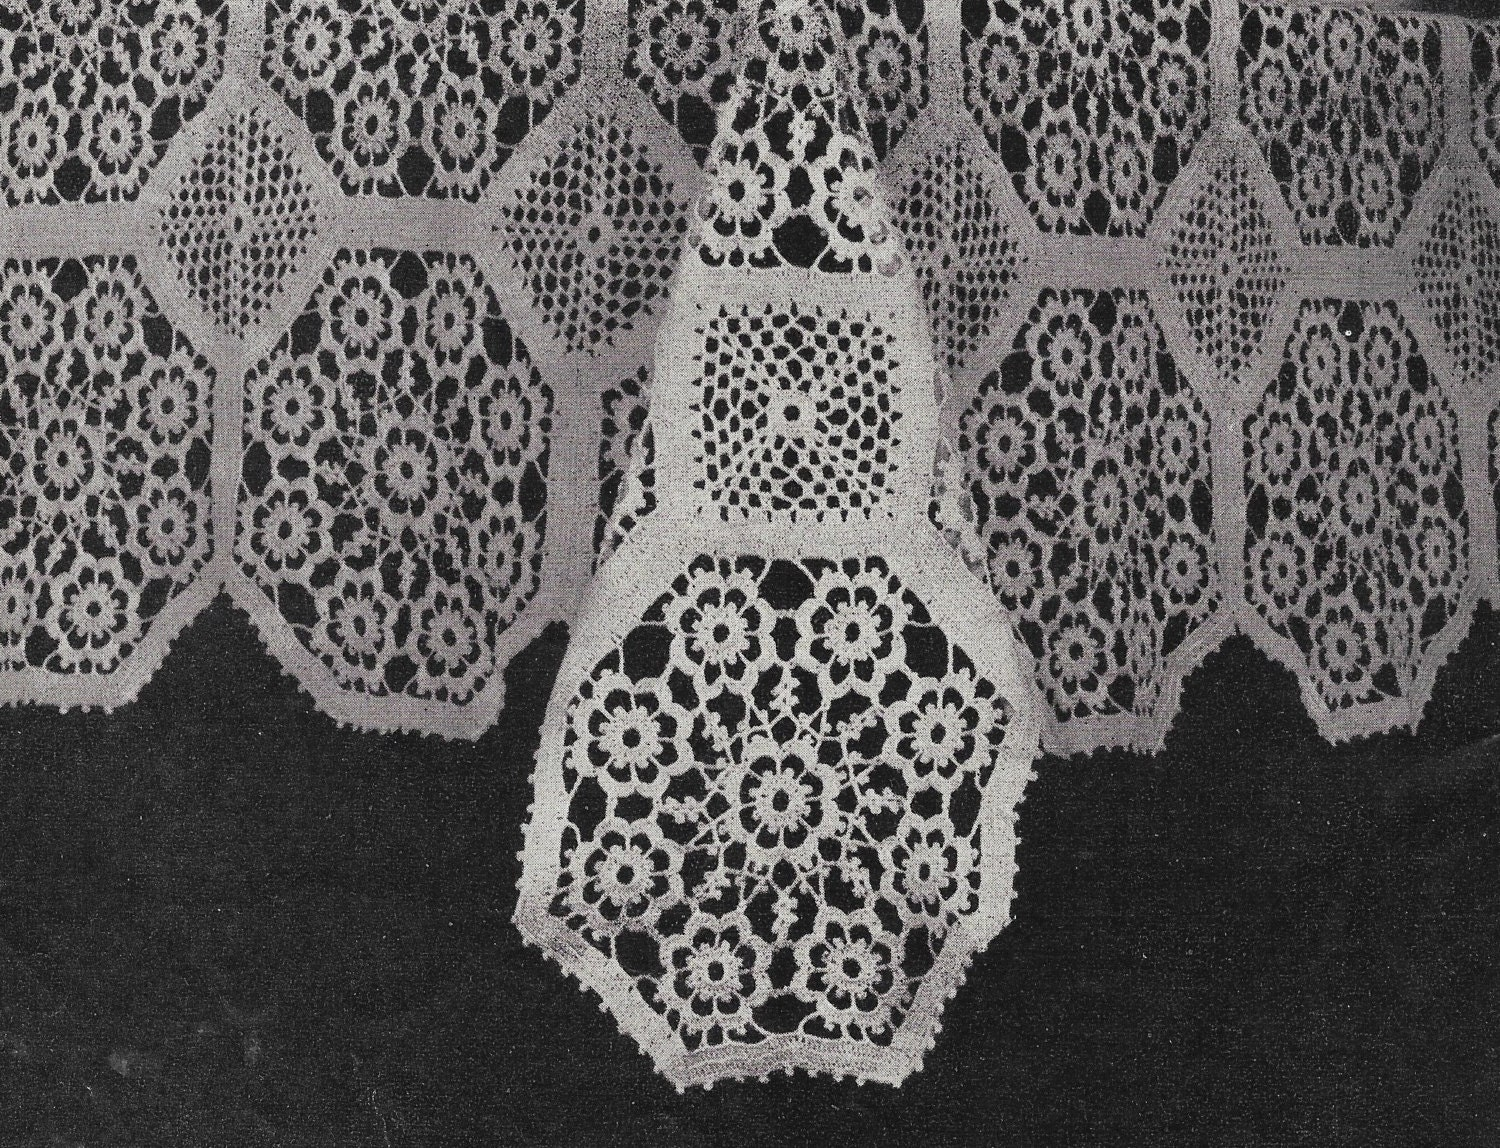 Crochet tablecloth pattern crochet tablecloth vintage pattern this is a digital file bankloansurffo Gallery